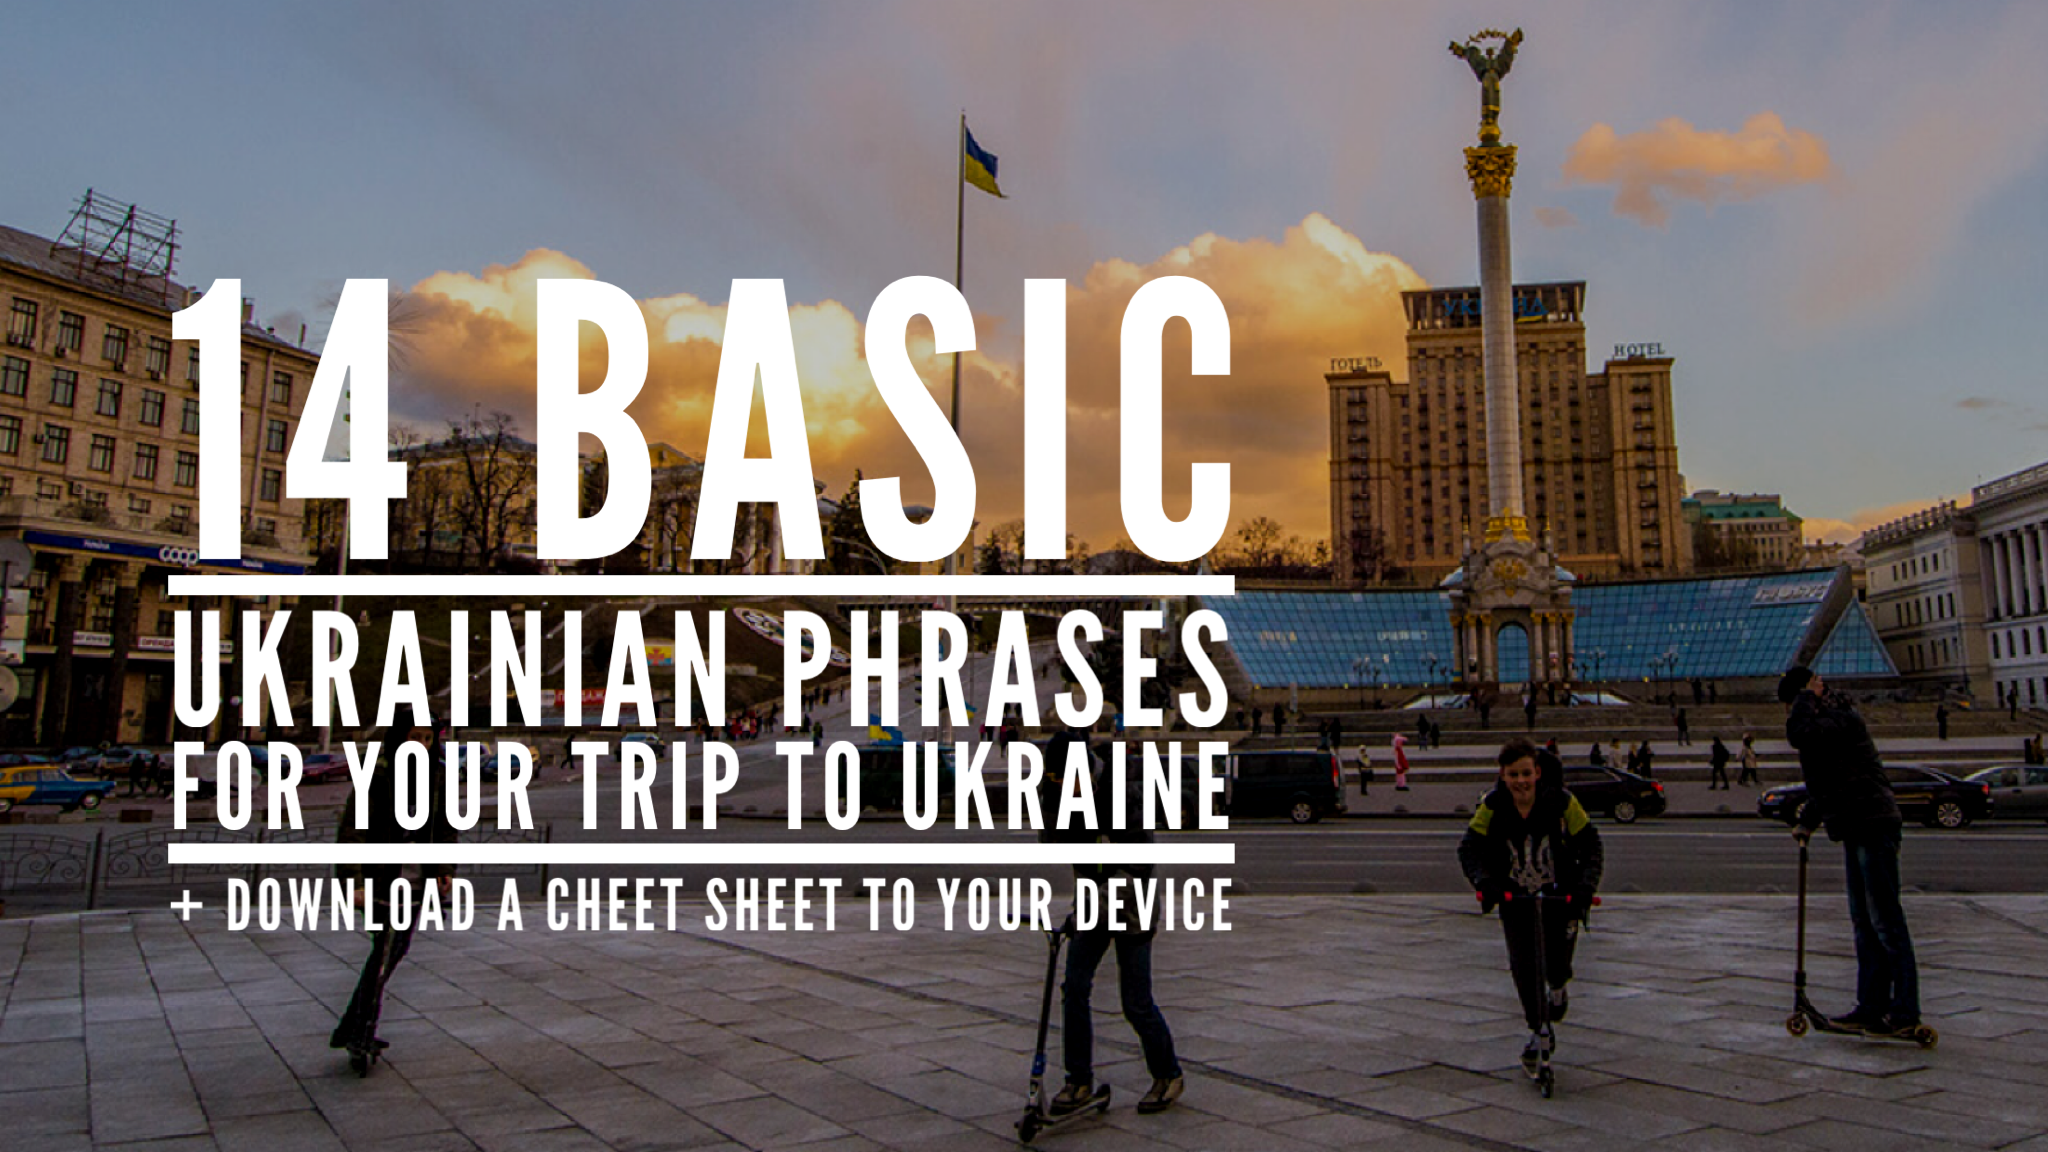 14 Basic Ukrainian Phrases For Your Trip To Ukraine A Cheat Sheet